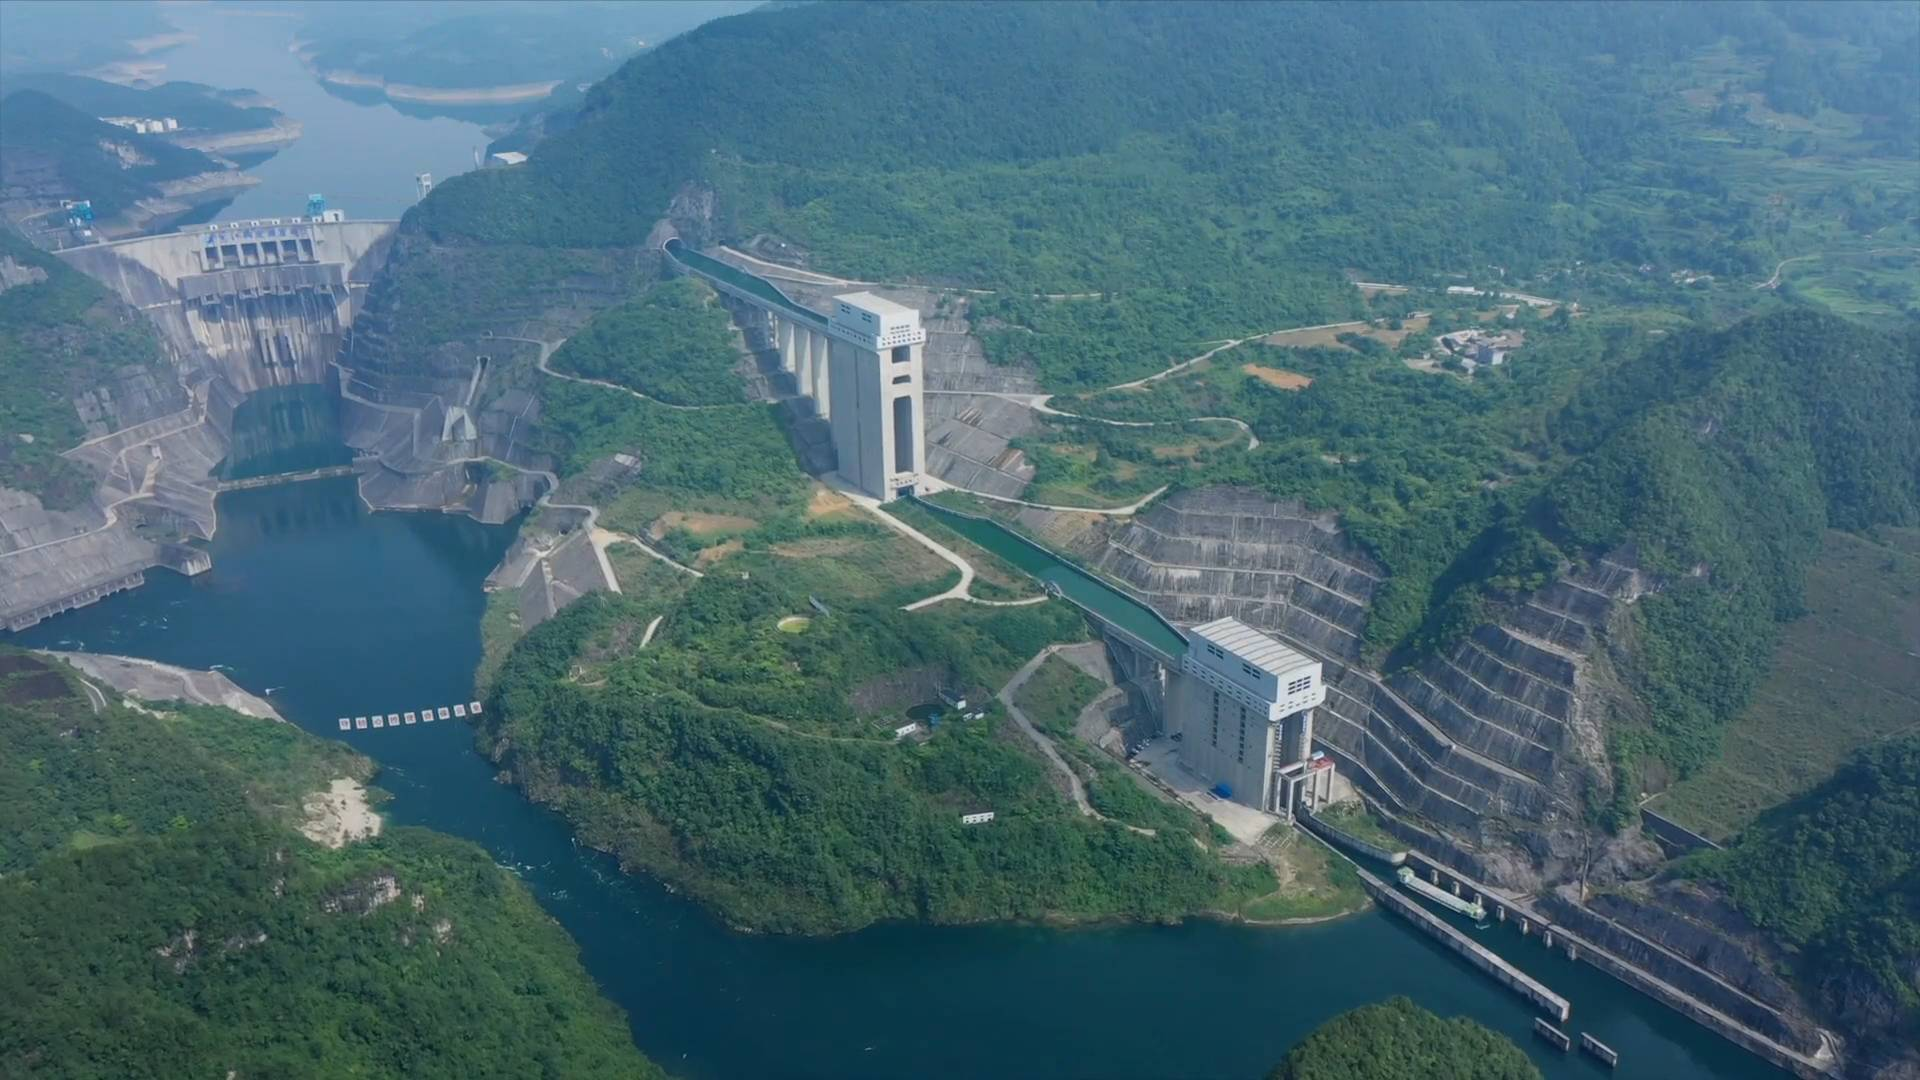 GLOBALink | Hydropower station in China's Guizhou adopts vertical lifts to transfer ships